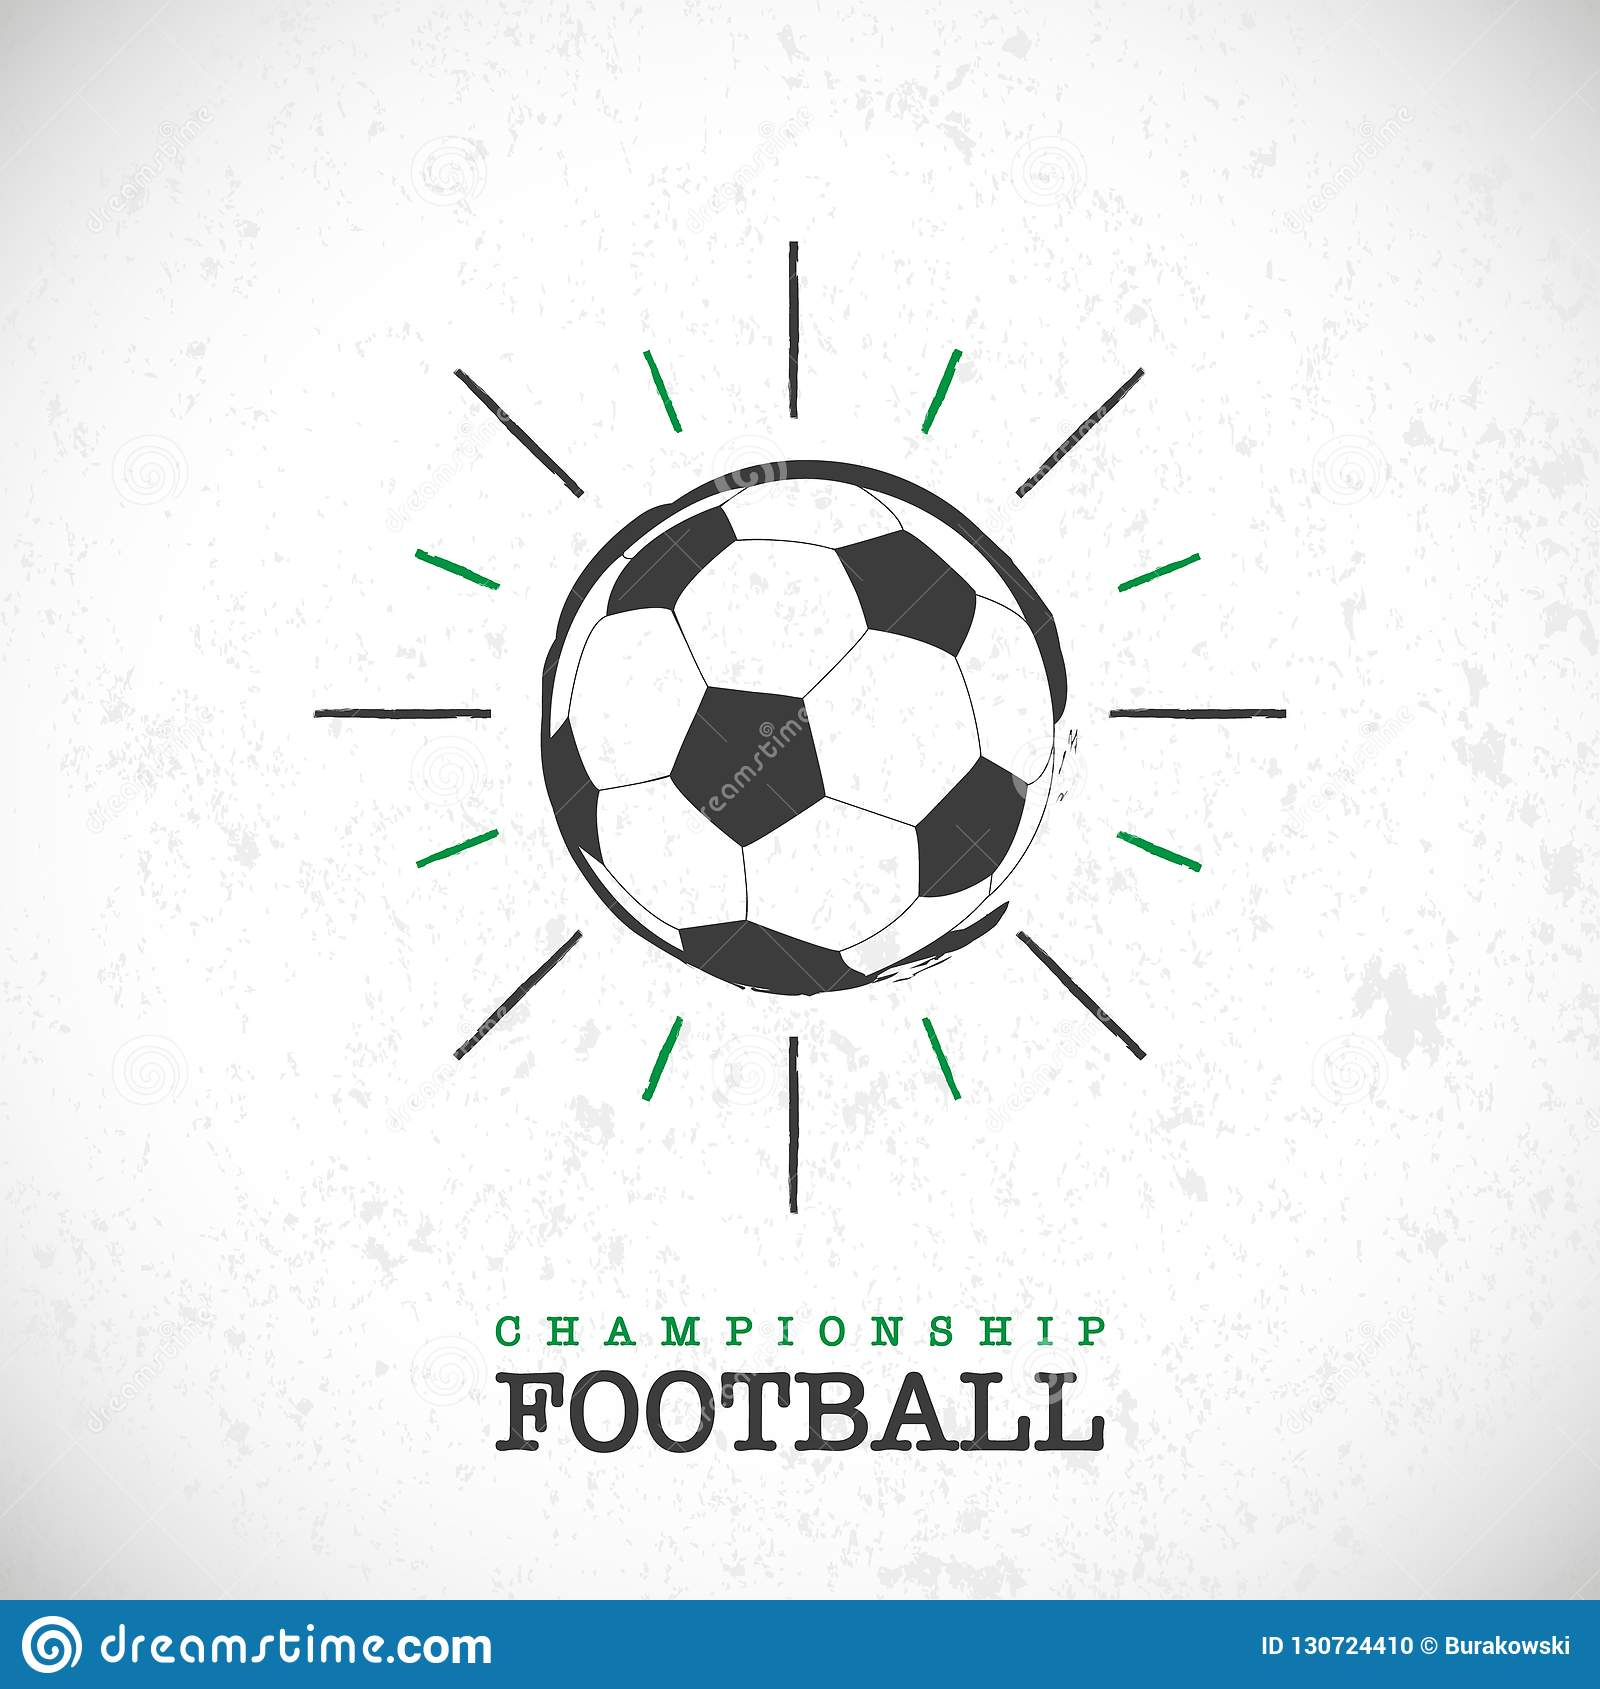 Football championship background with abstract soccer ball